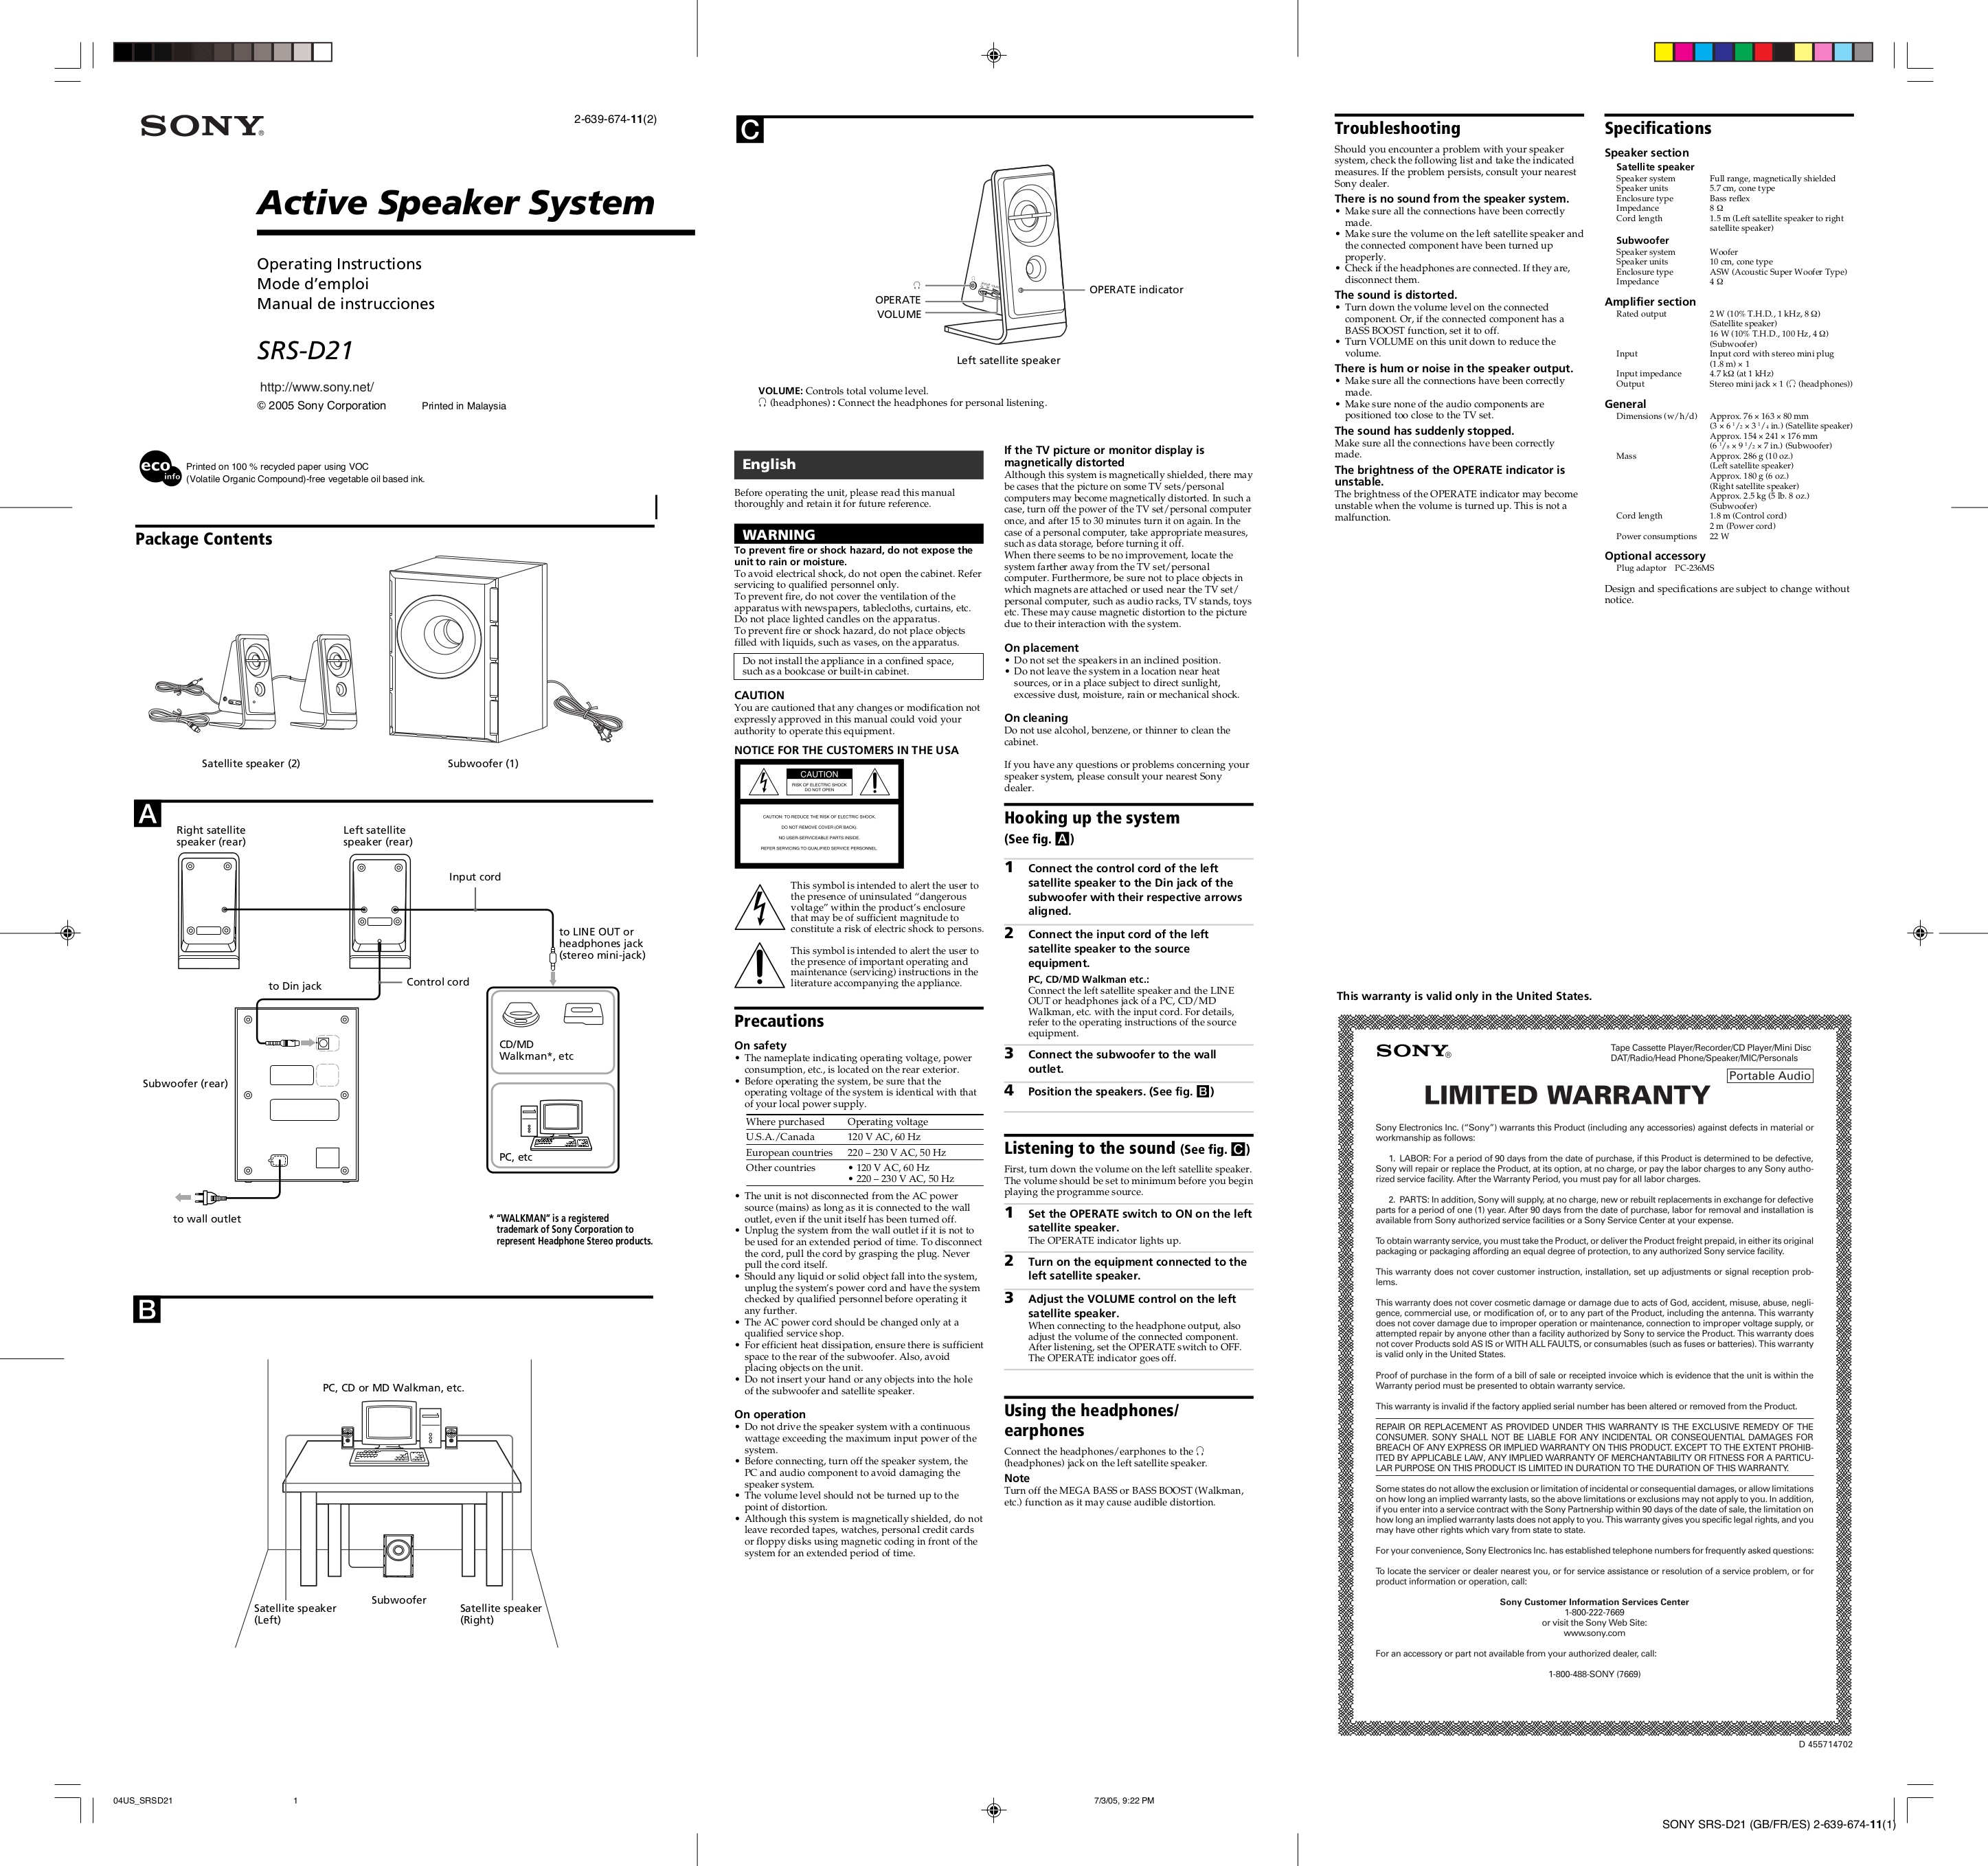 Download free pdf for Sony SRS-D21 Speaker System manual